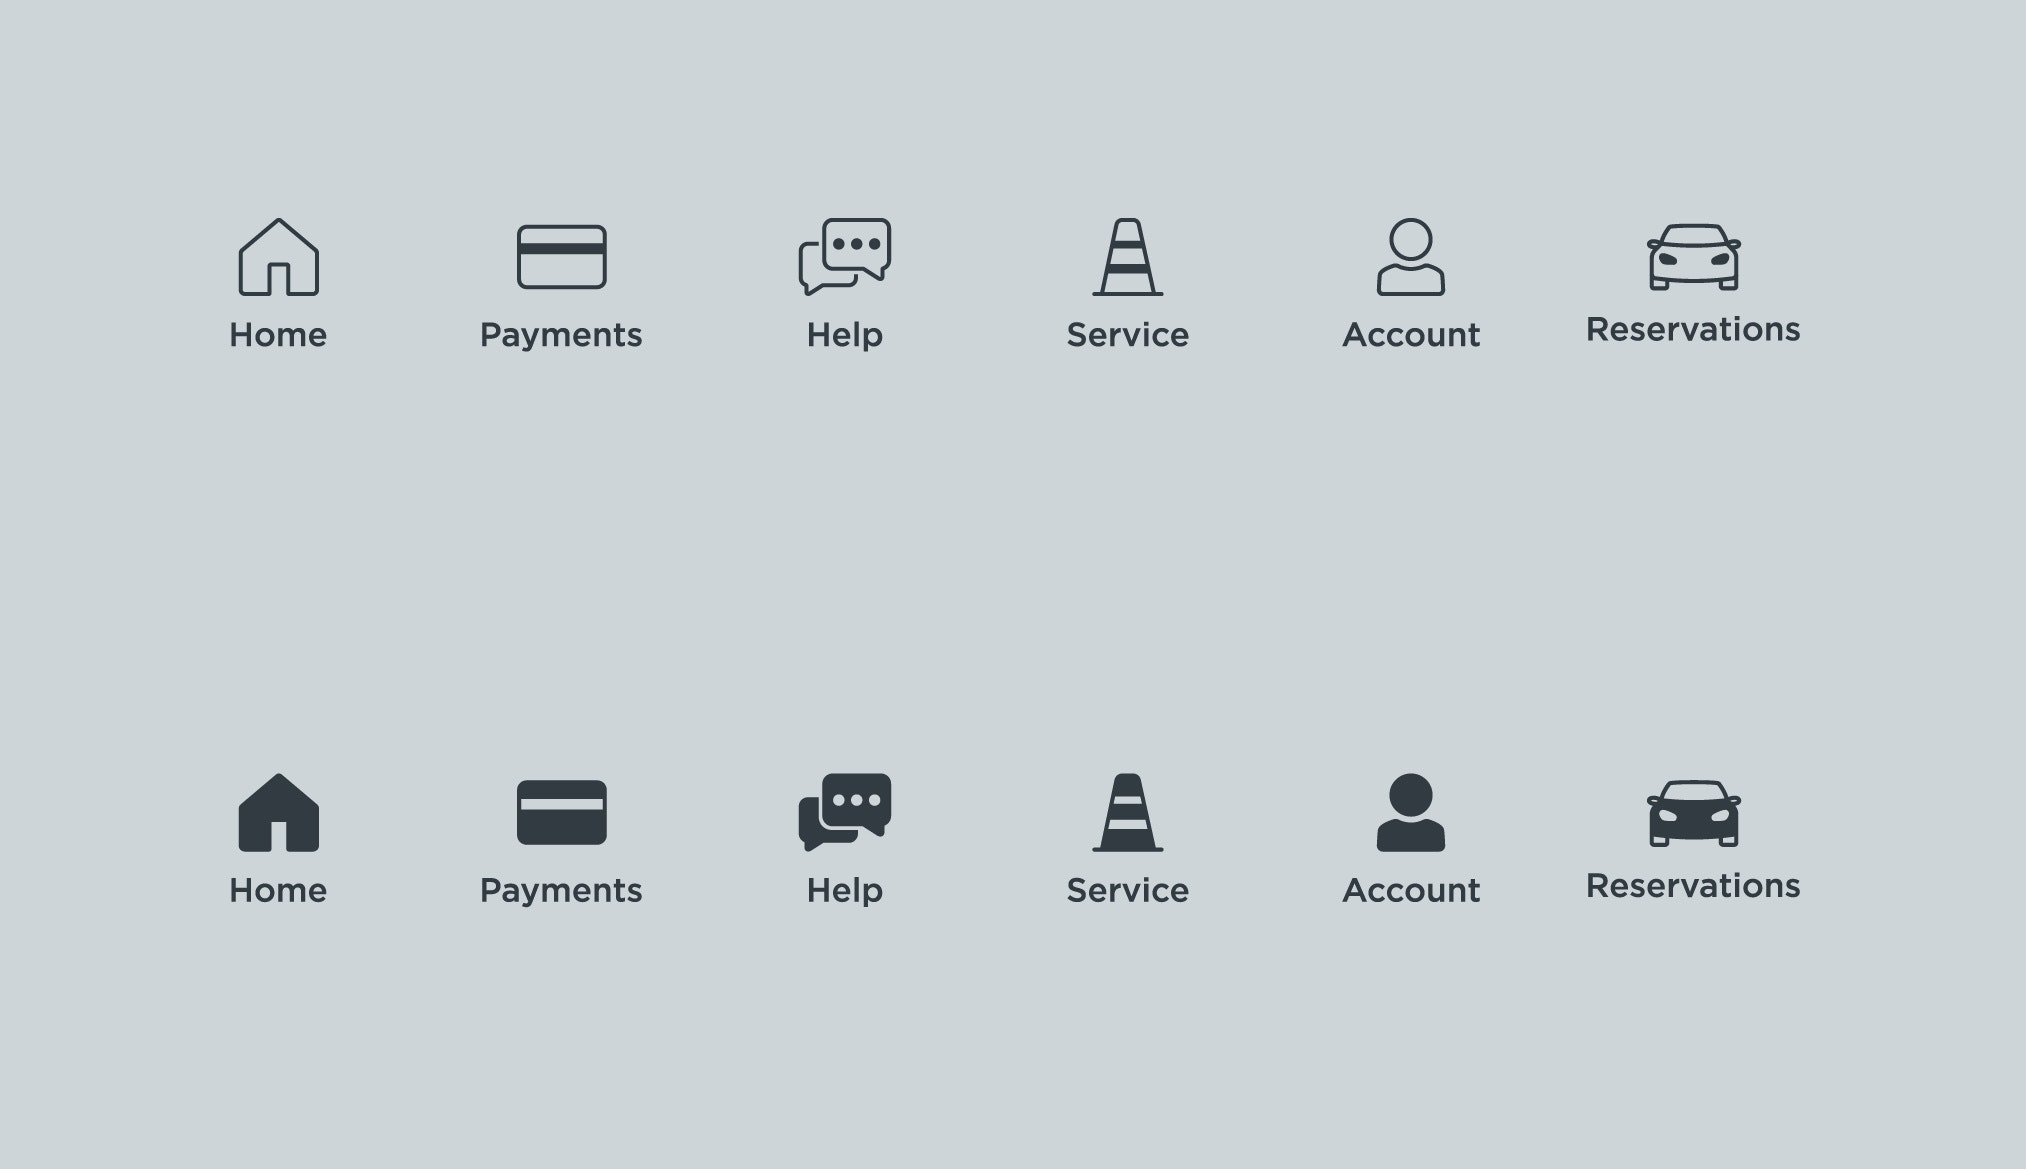 collection of icons for a mobile app